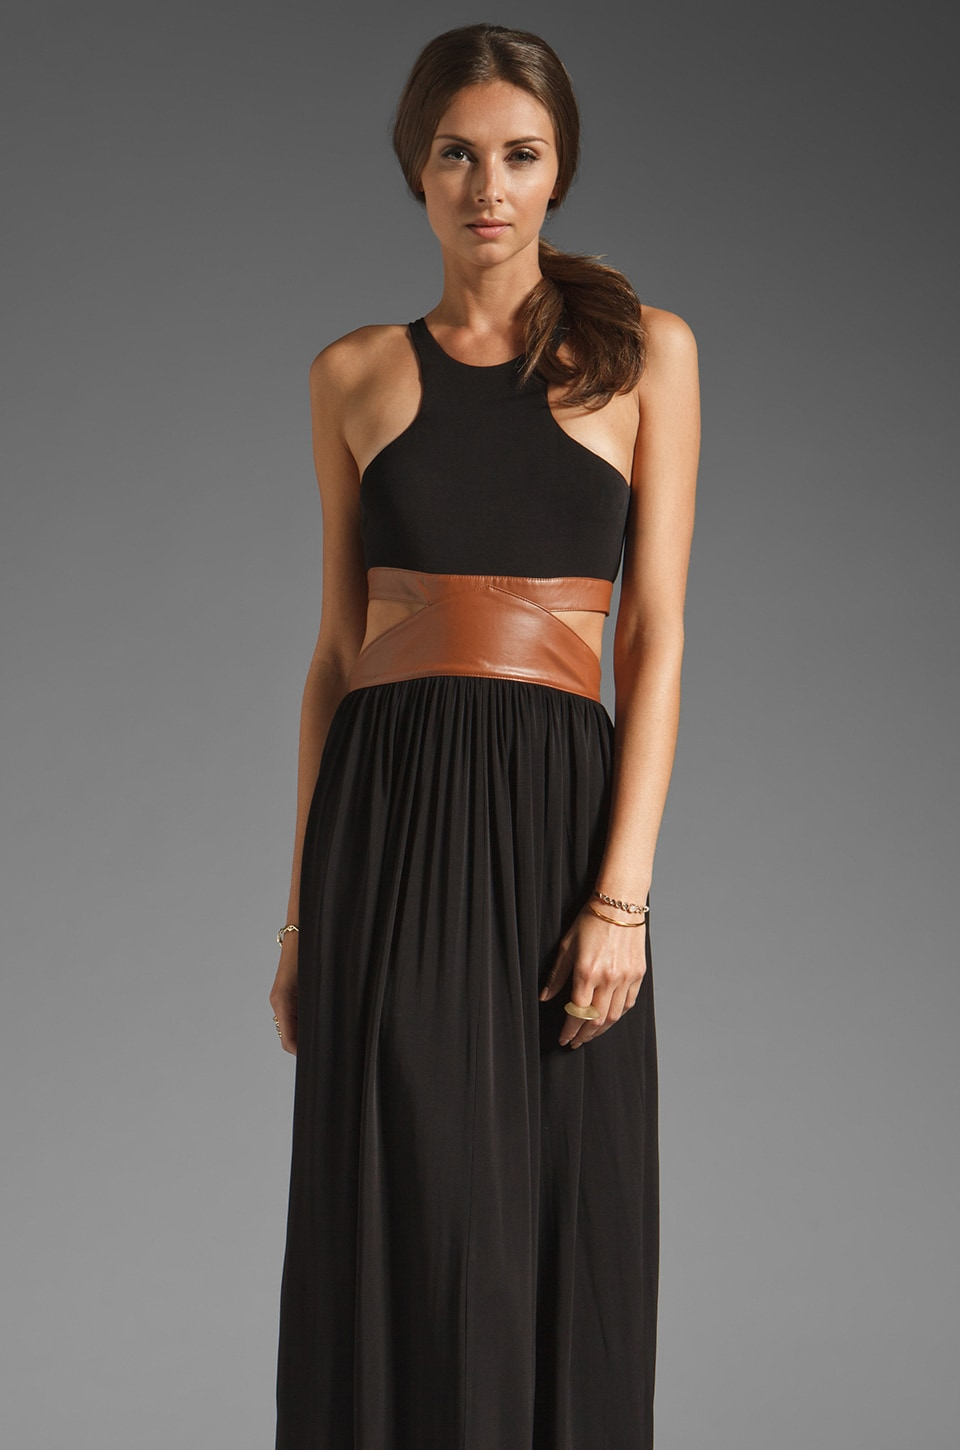 bless'ed are the meek Wine & Dine Dress in Black